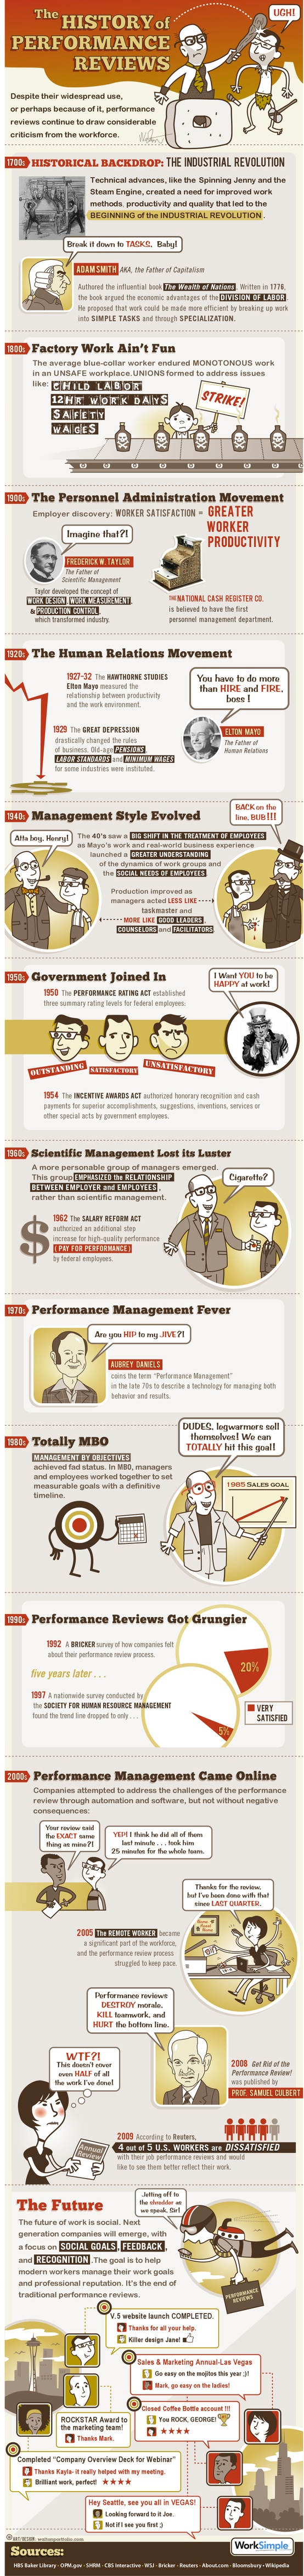 History Of Performance Reviews Infographic  Infographics